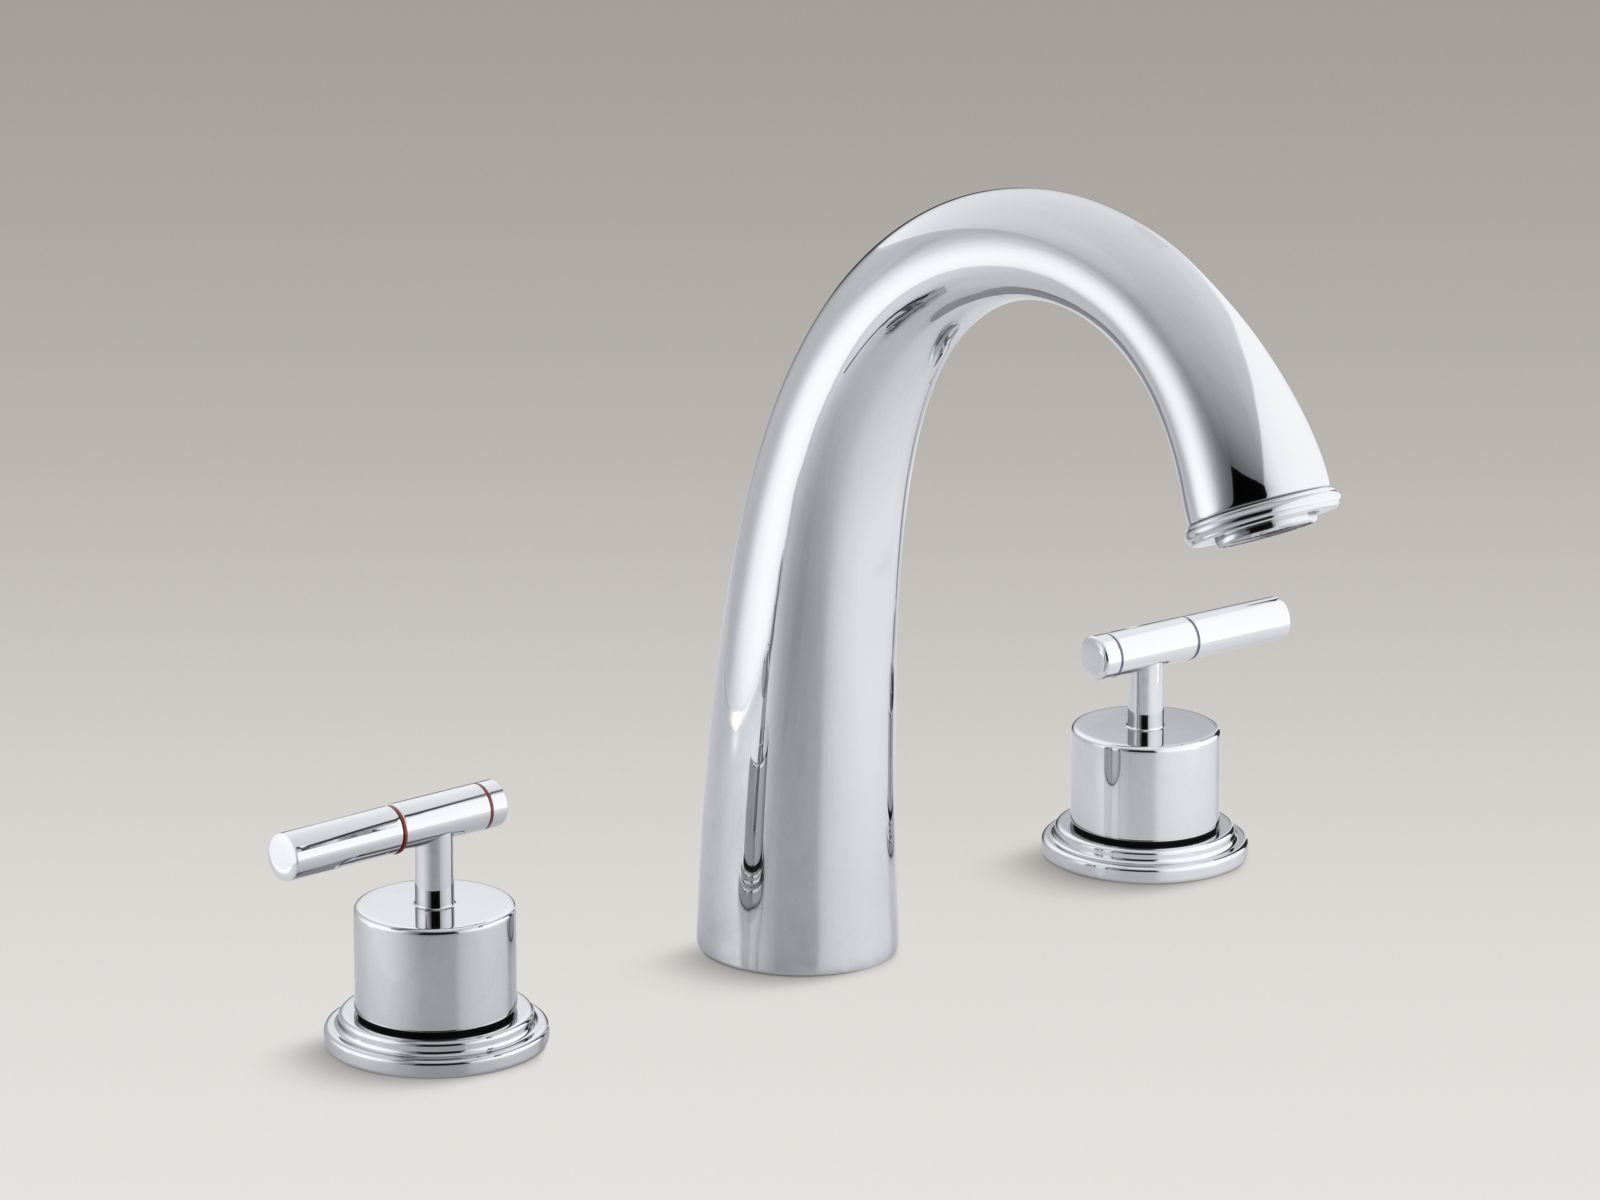 If you cringe at the high rates for plumbers, take comfort in knowing that replacing an outdated or leaky faucet is easier than you think. Kohler Taboret Bathroom Faucet